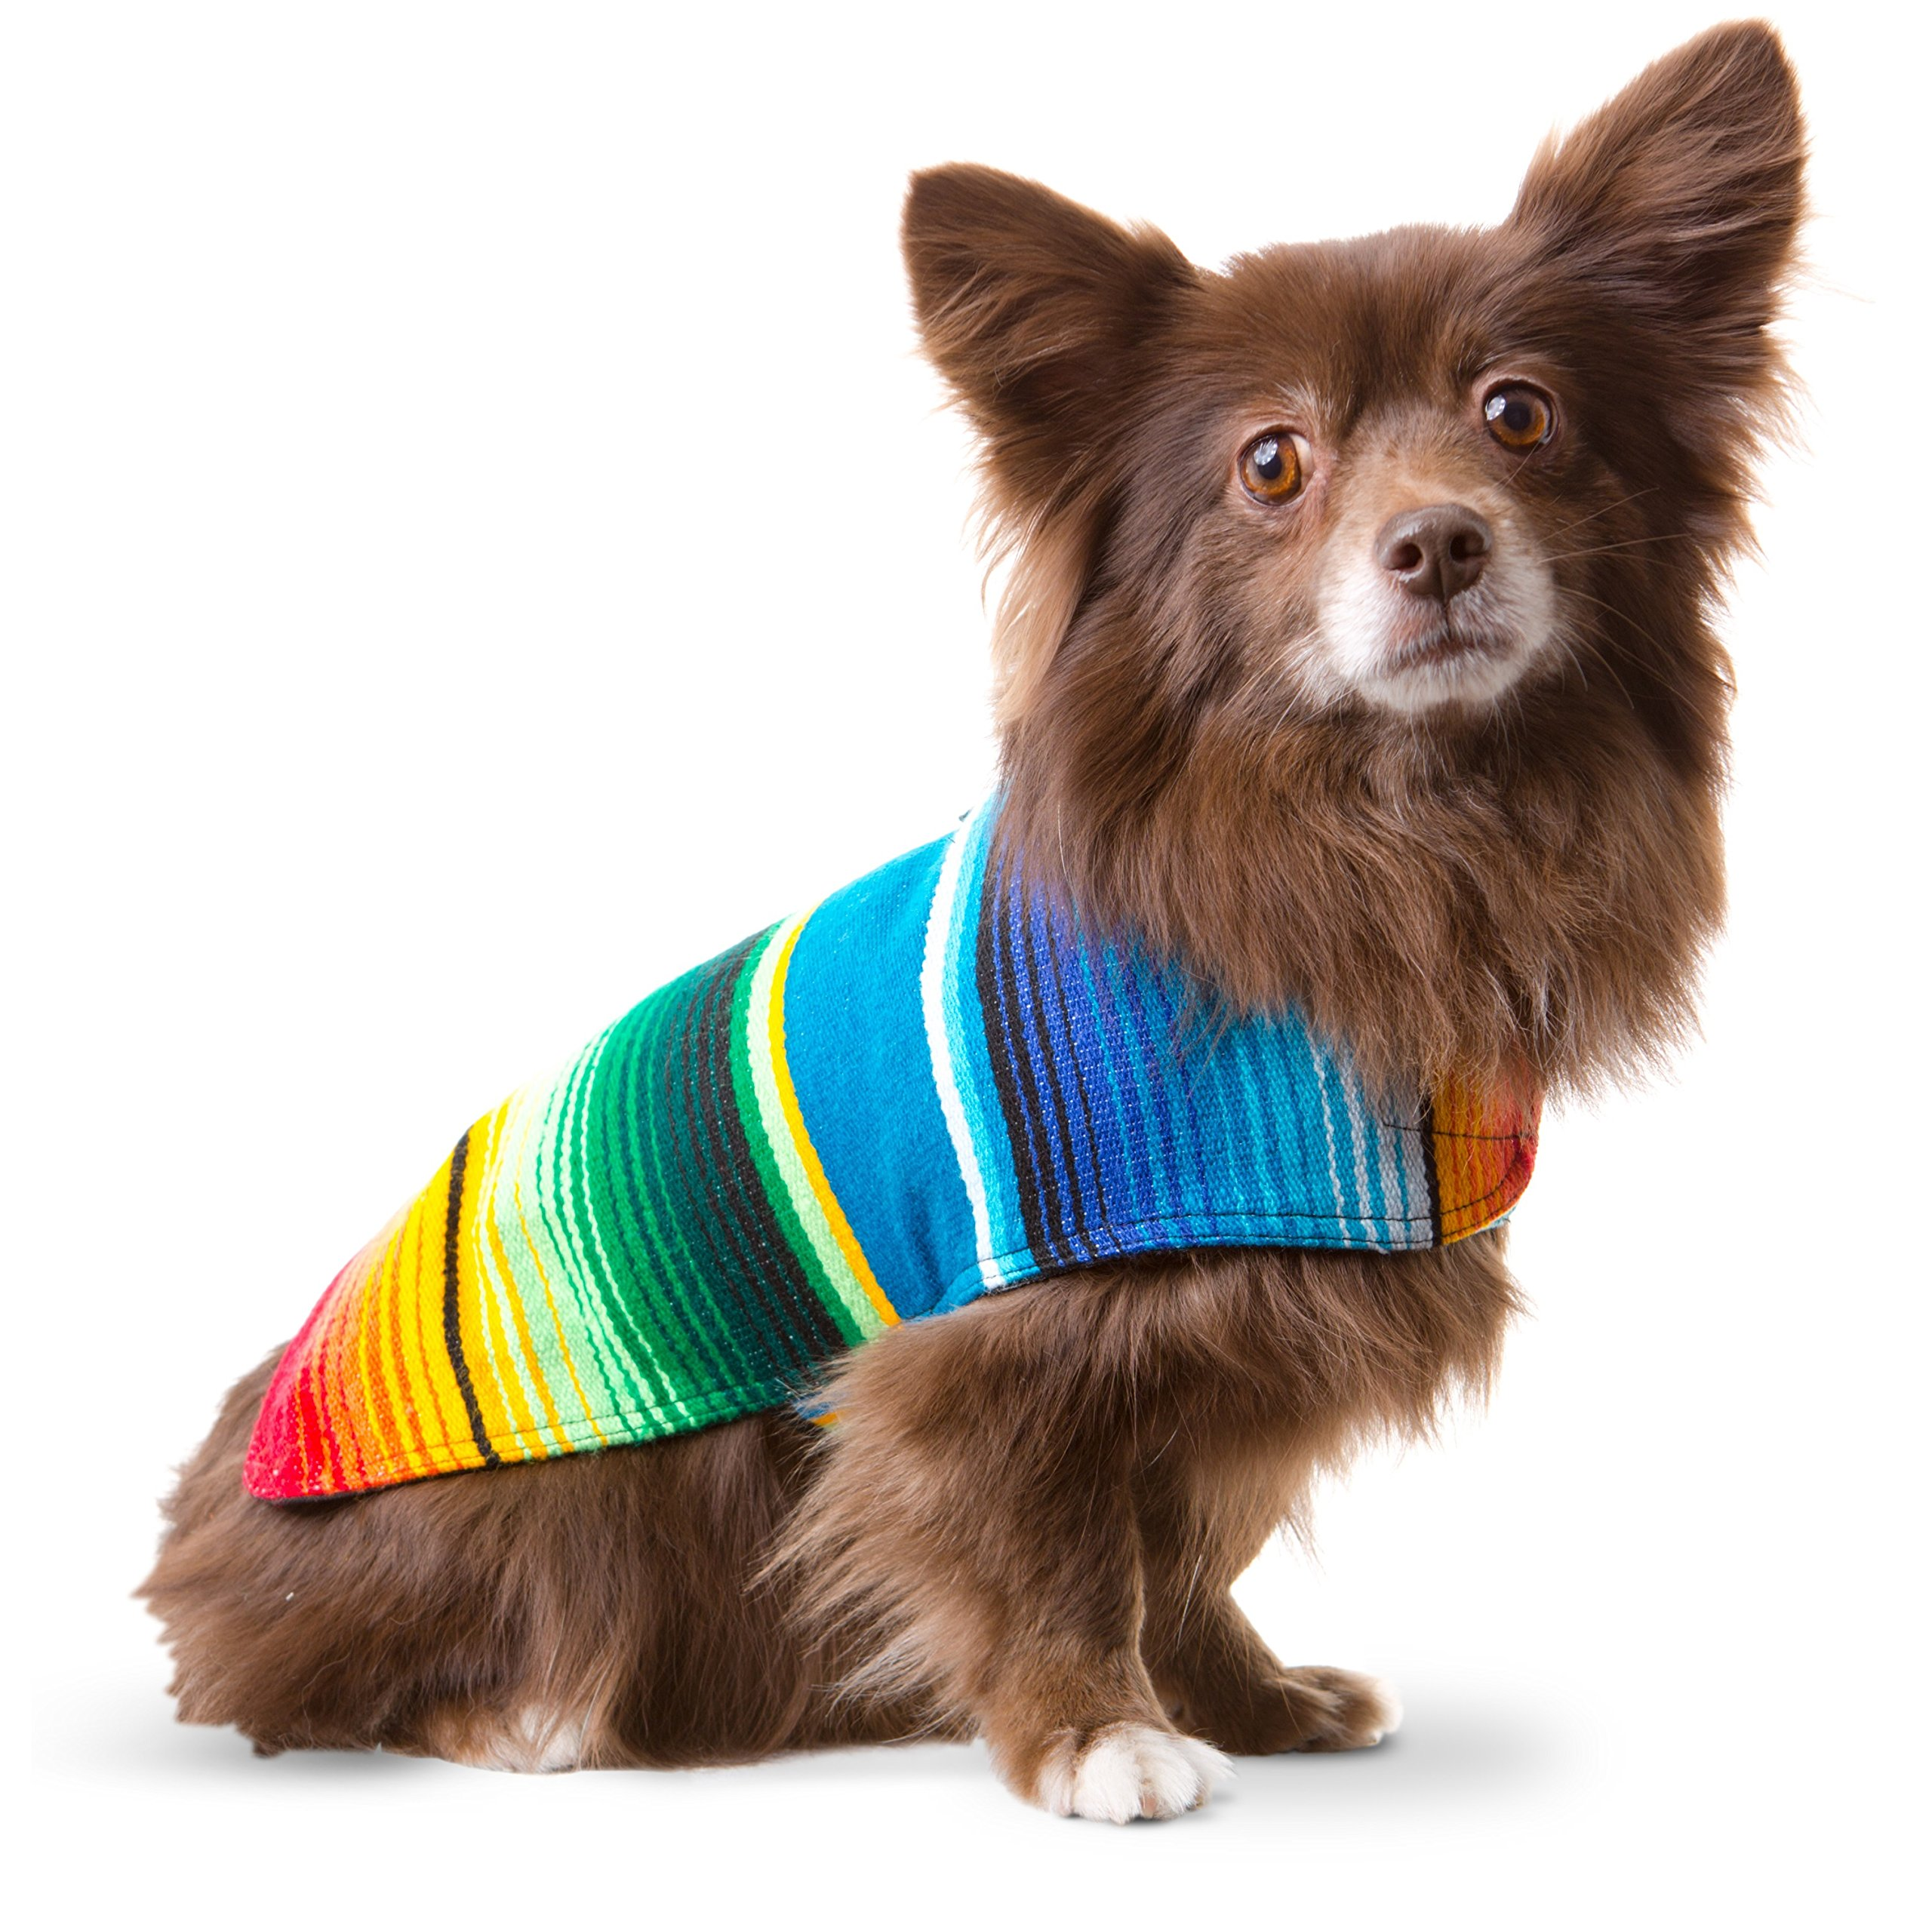 Baja Ponchos Dog Clothes - Handmade Dog Poncho from Authentic Mexican Blanket by (No Fringe, Small)